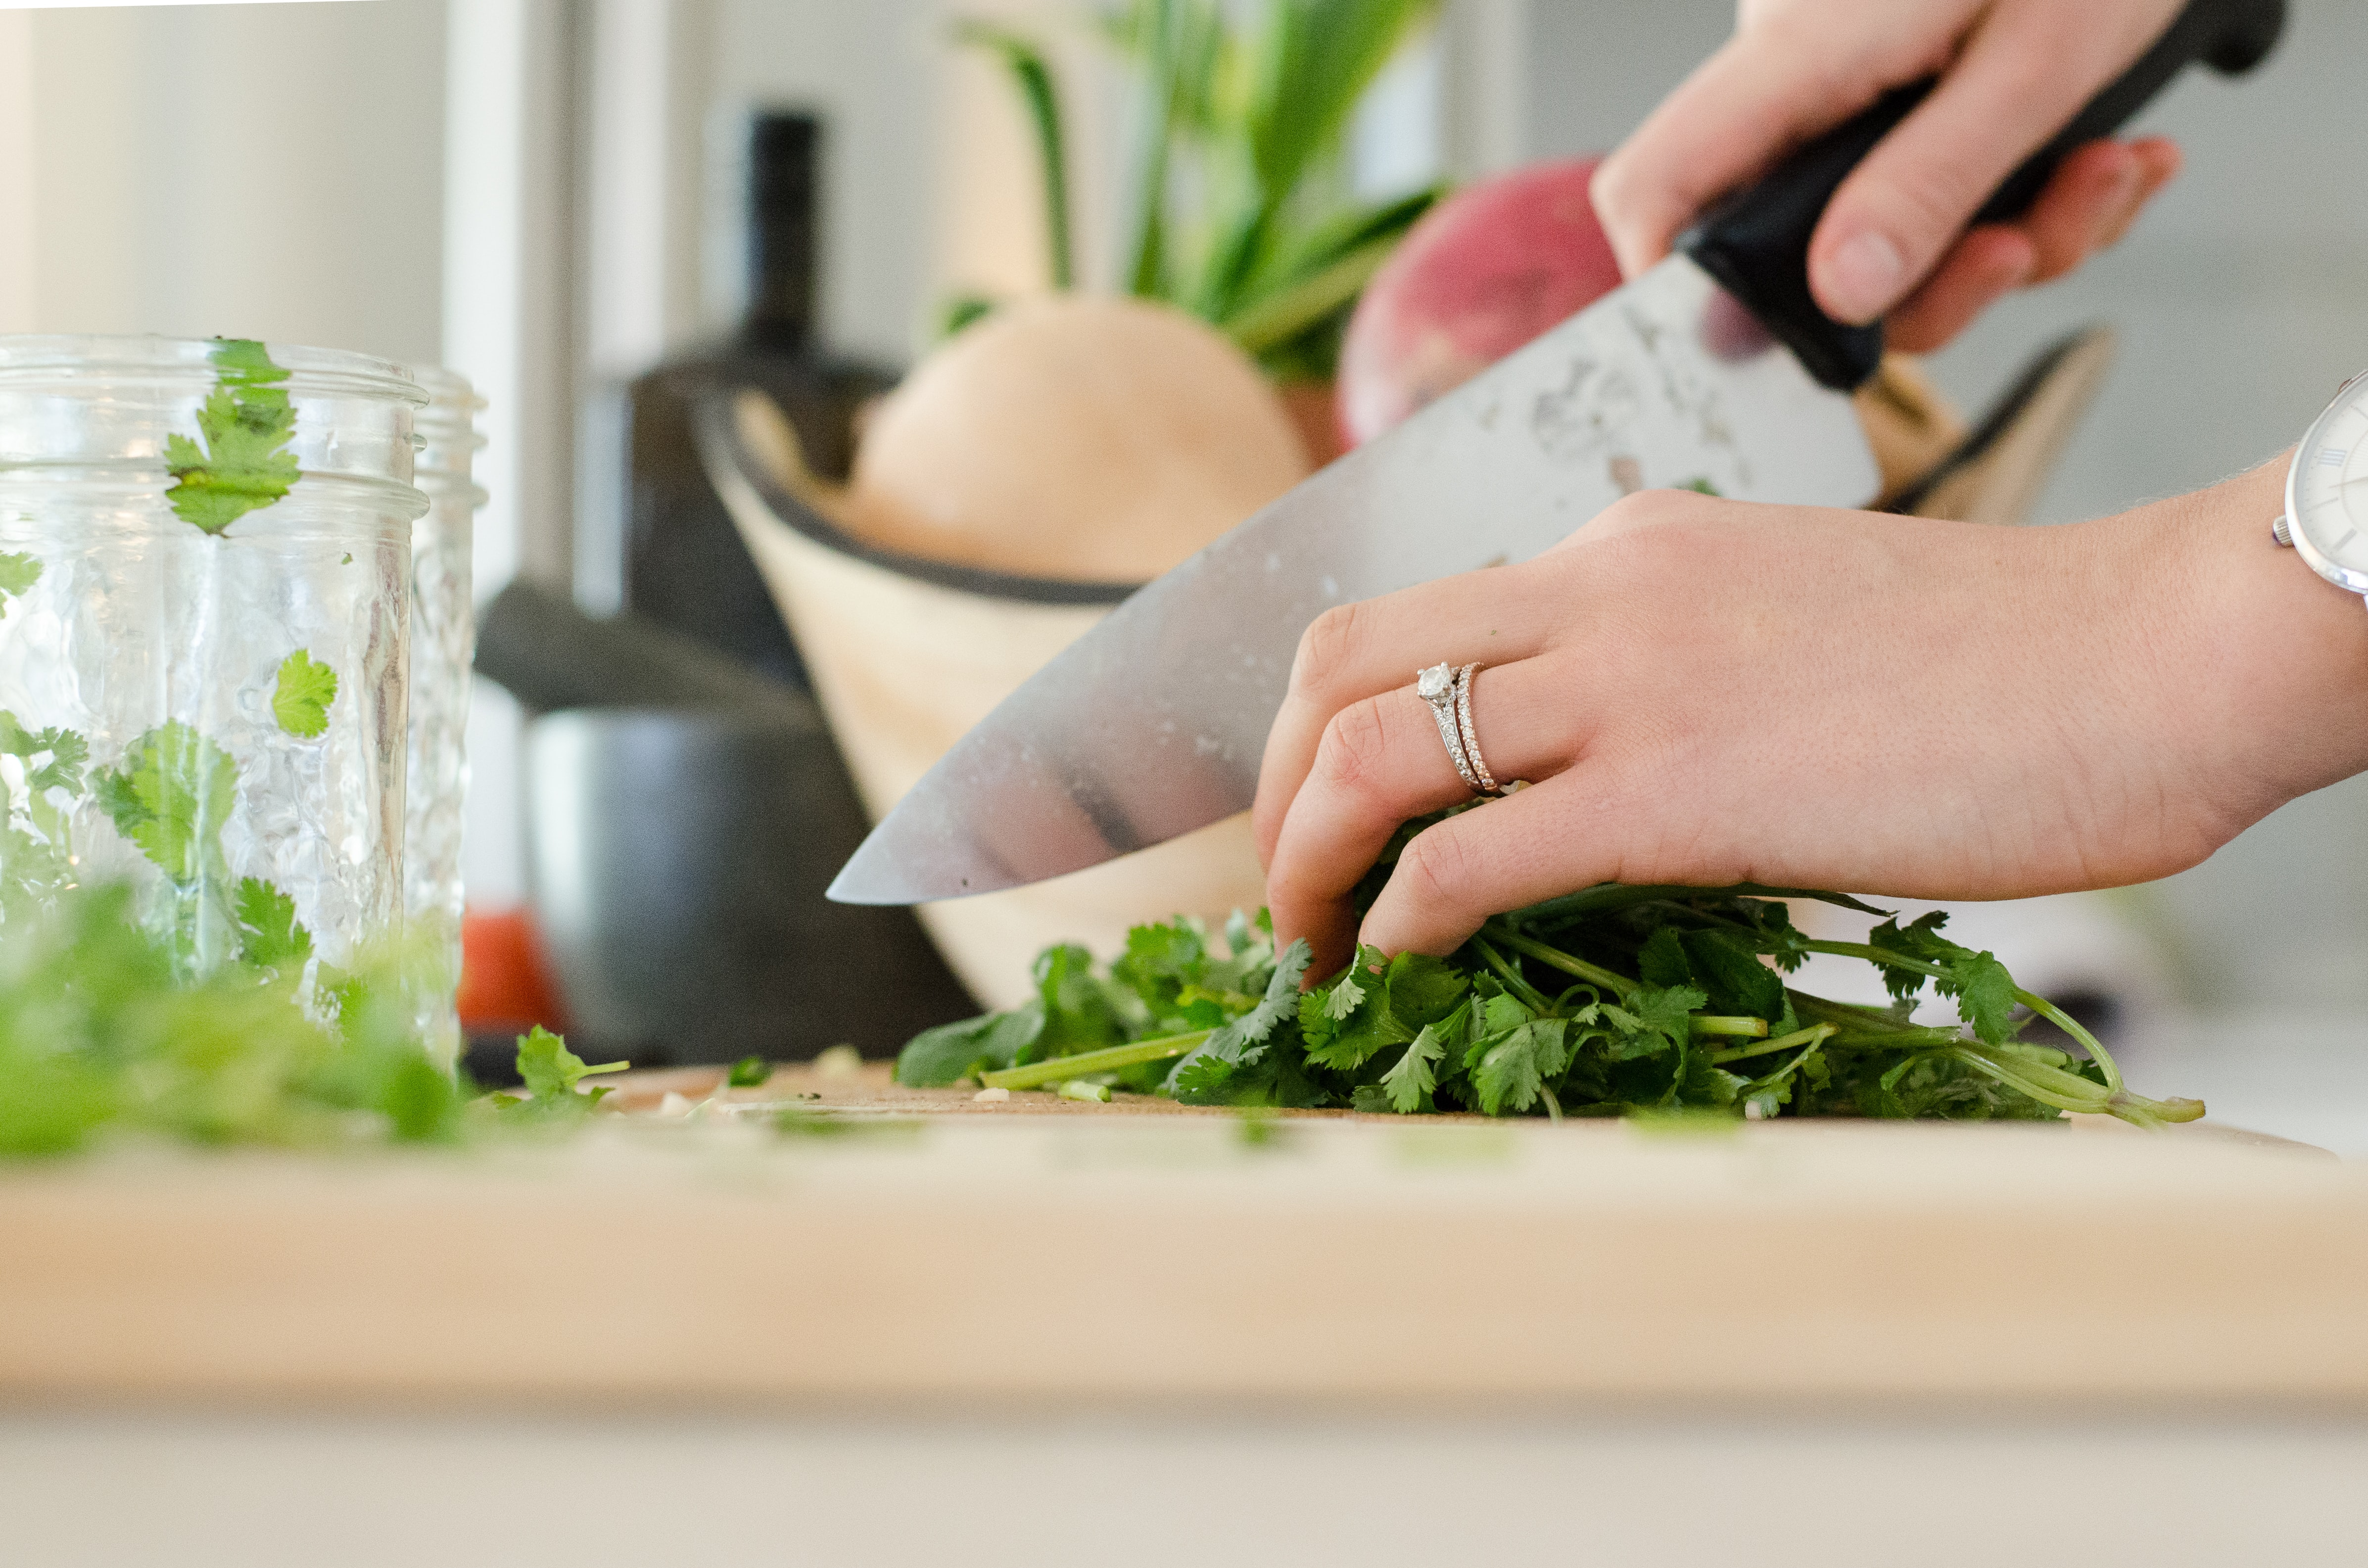 Close up of a woman's hands chopping cilantro on a cutting board.